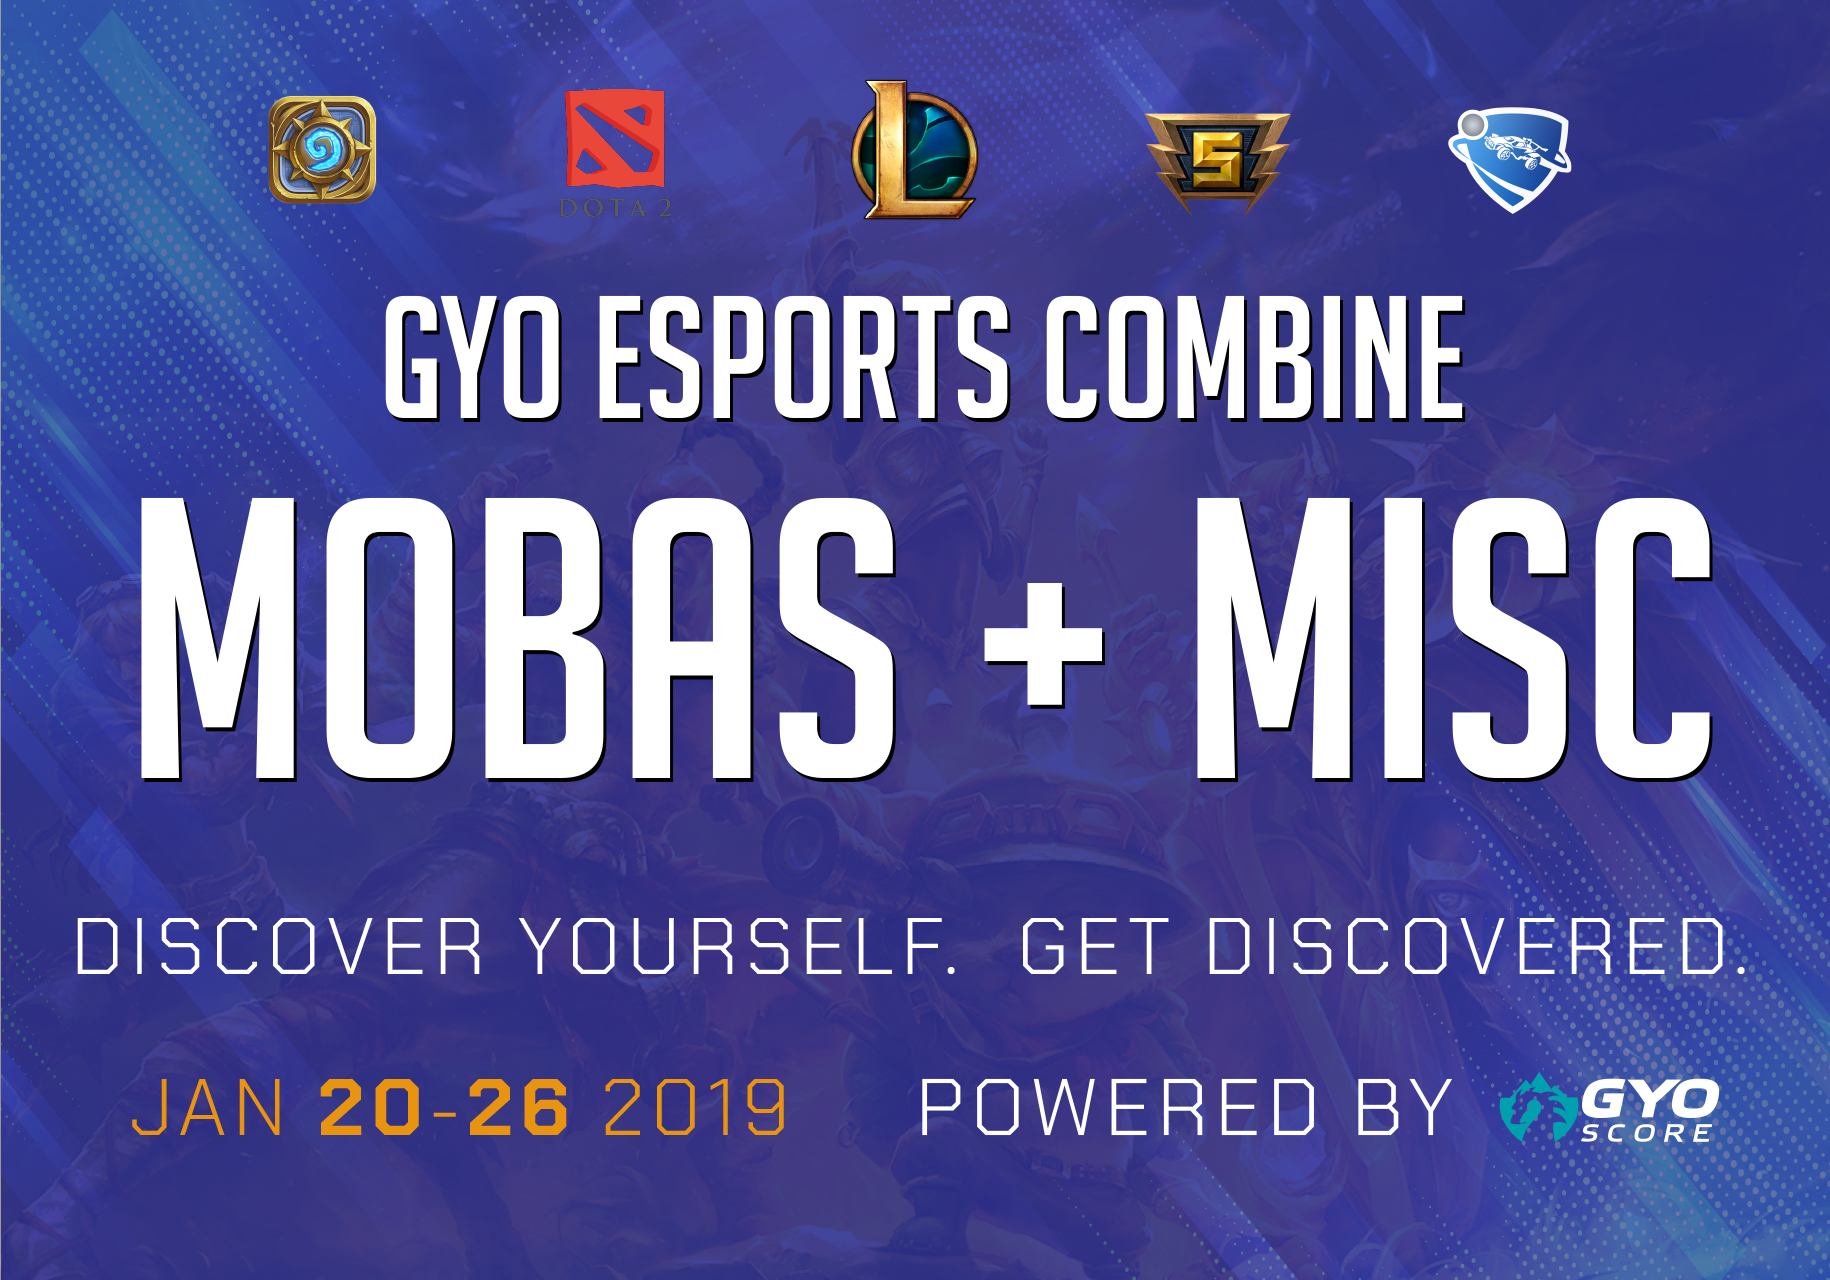 MOBA + Misc Combine - January